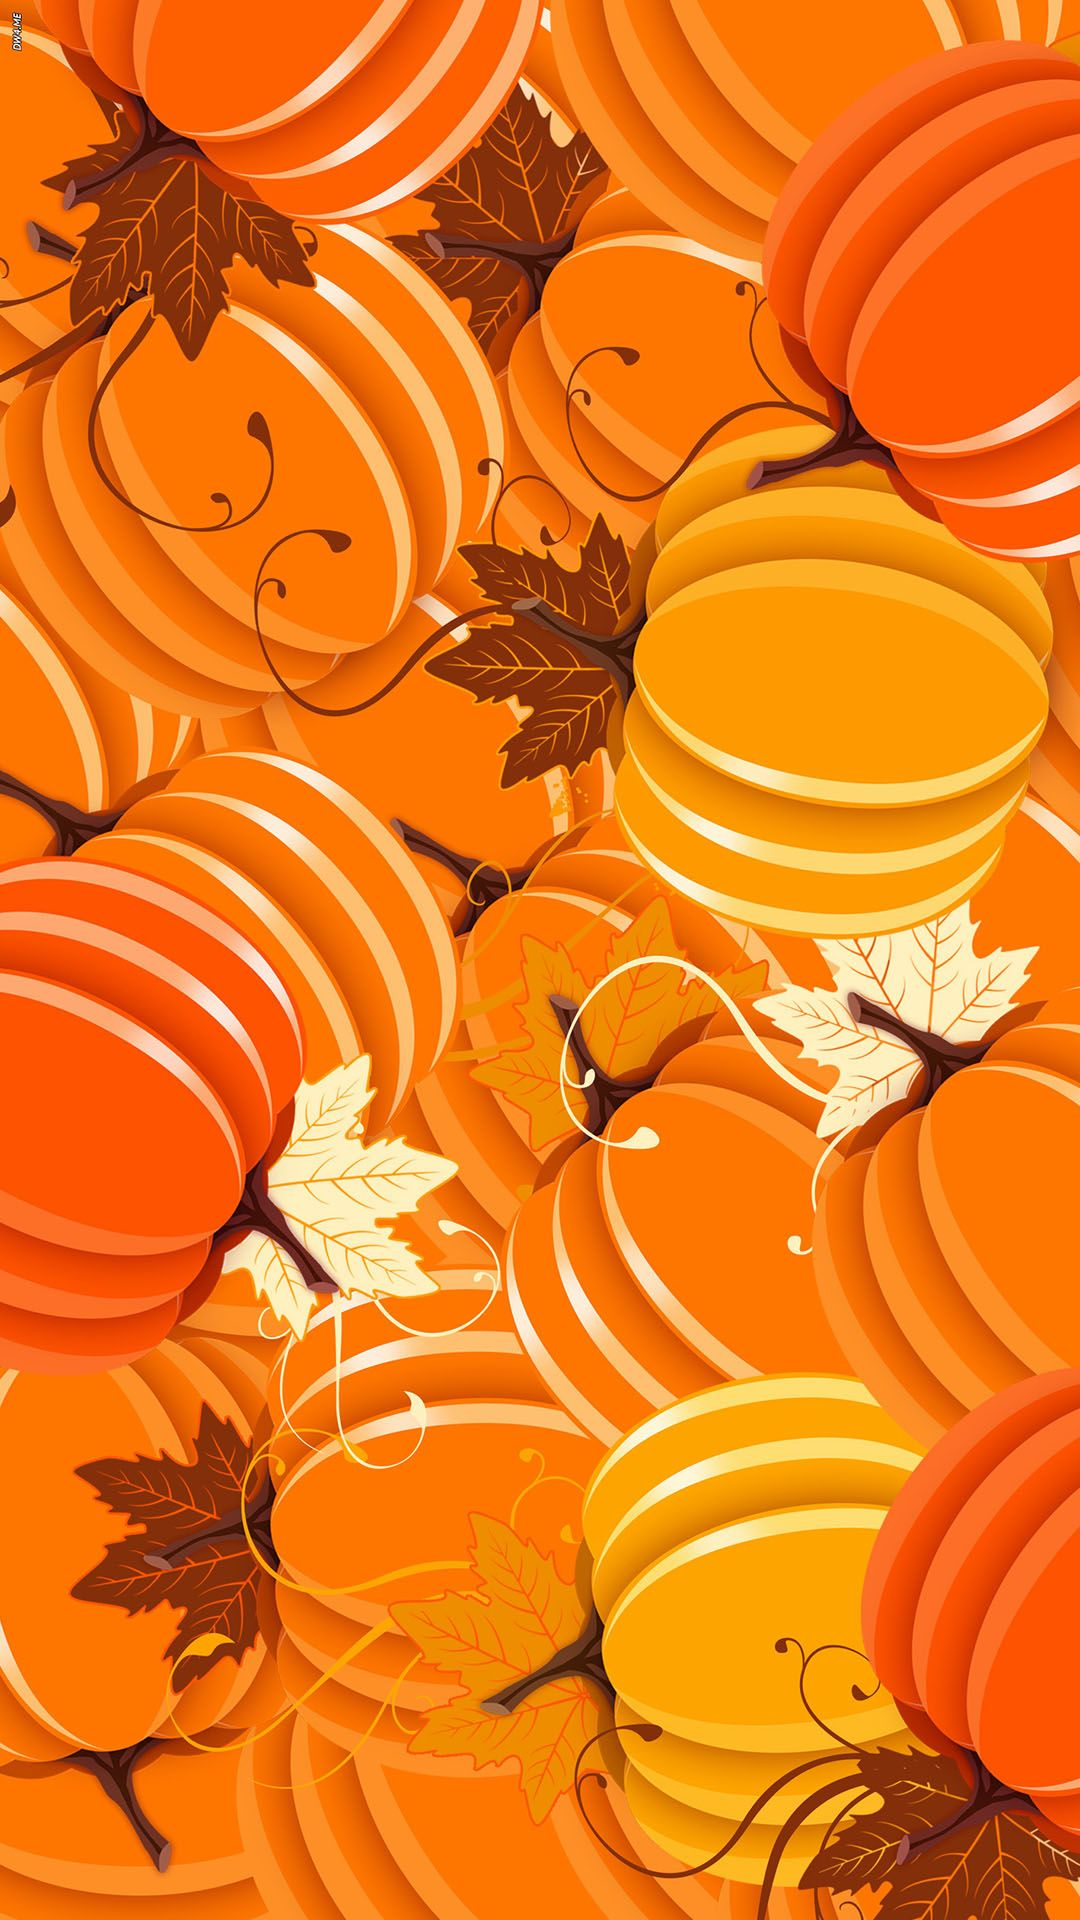 Downloaded From Girly Wallpapers Http Itunes Apple Com App Id1108375300 Thousands Of Hd Girly W Fall Wallpaper Thanksgiving Wallpaper Iphone Wallpaper Fall